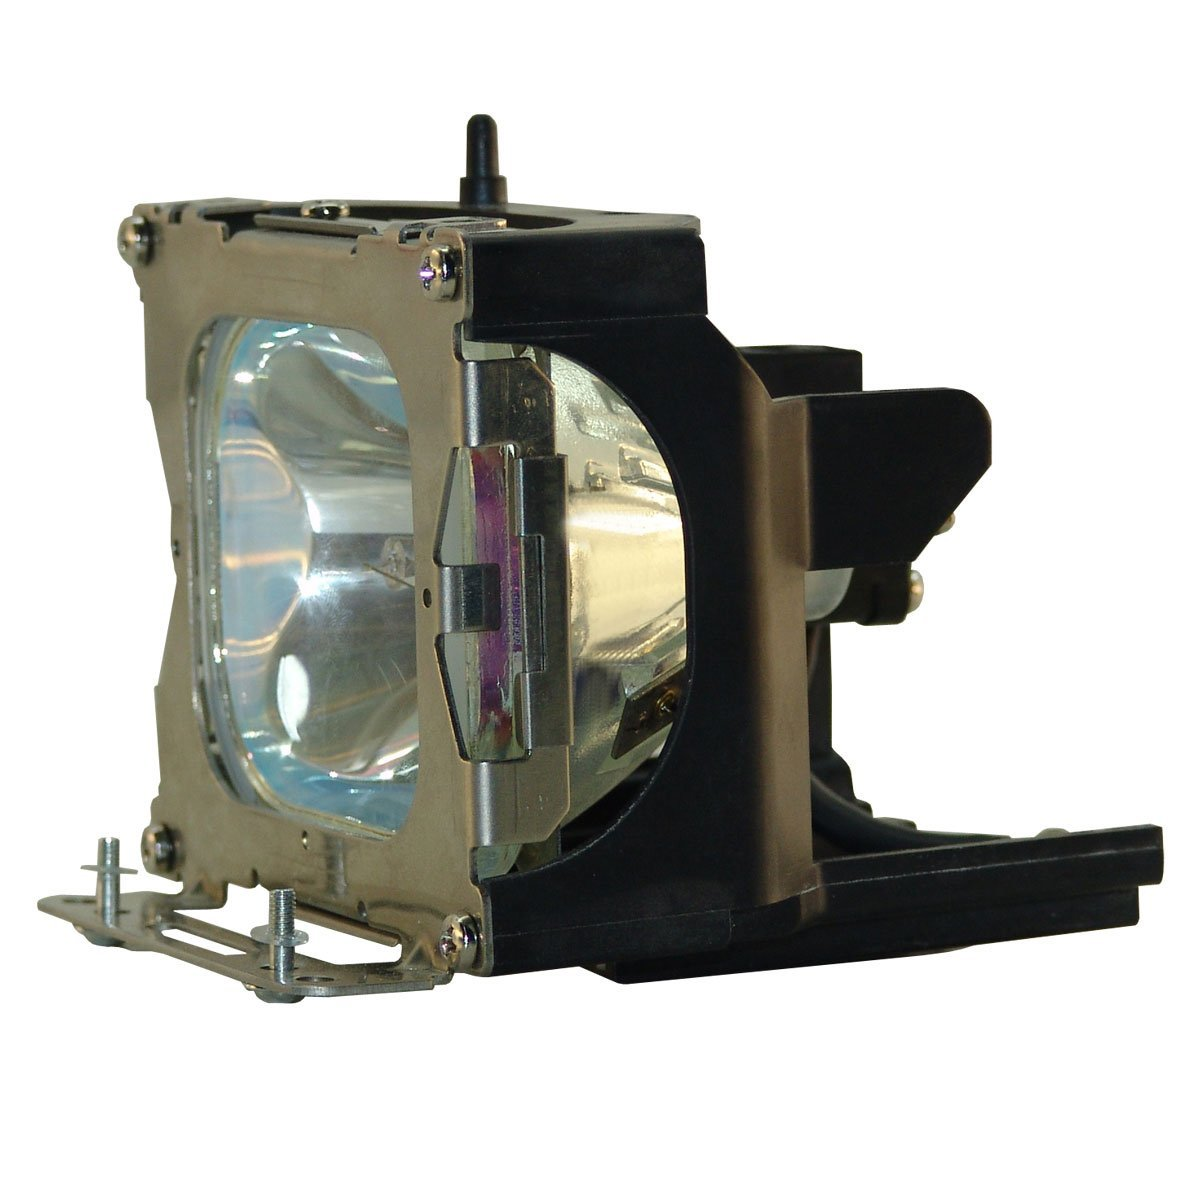 Projector Lamp Bulb DT00205 DT-00205 for HITACHI CP-S860 CP-X958 CP-X960 CP-X960A CP-X970 with housing dt01021 projector lamp bulb for hitachi cp x3010 cp x3010n cp x3010z cp x3011 cp x3011n